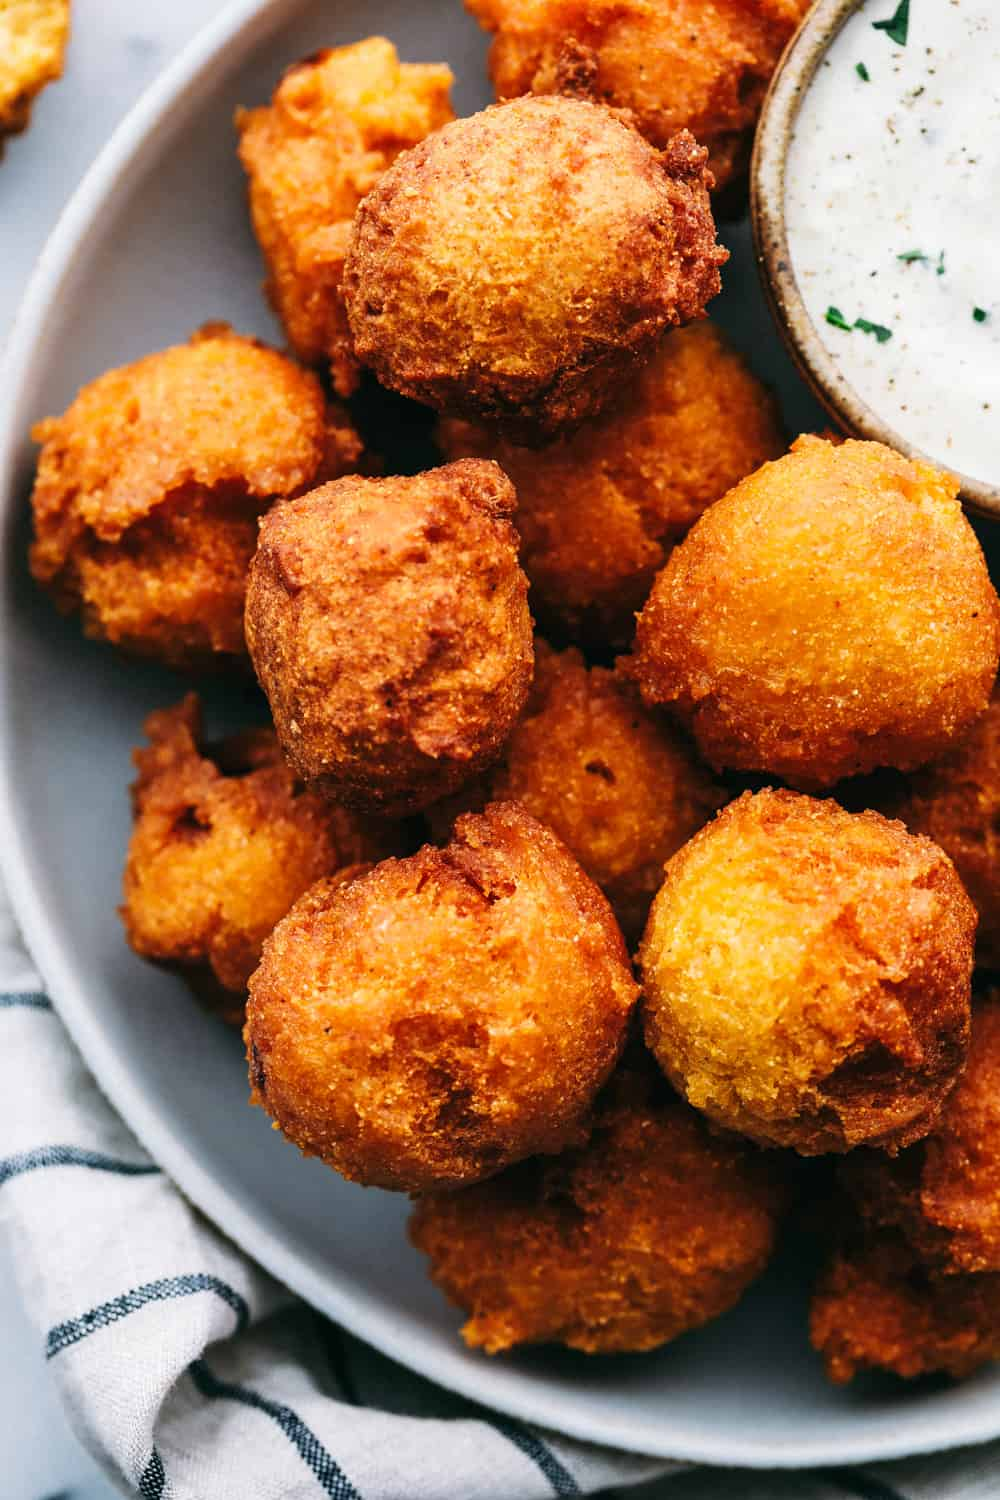 Hush puppies on a plate with a side of tartar sauce.